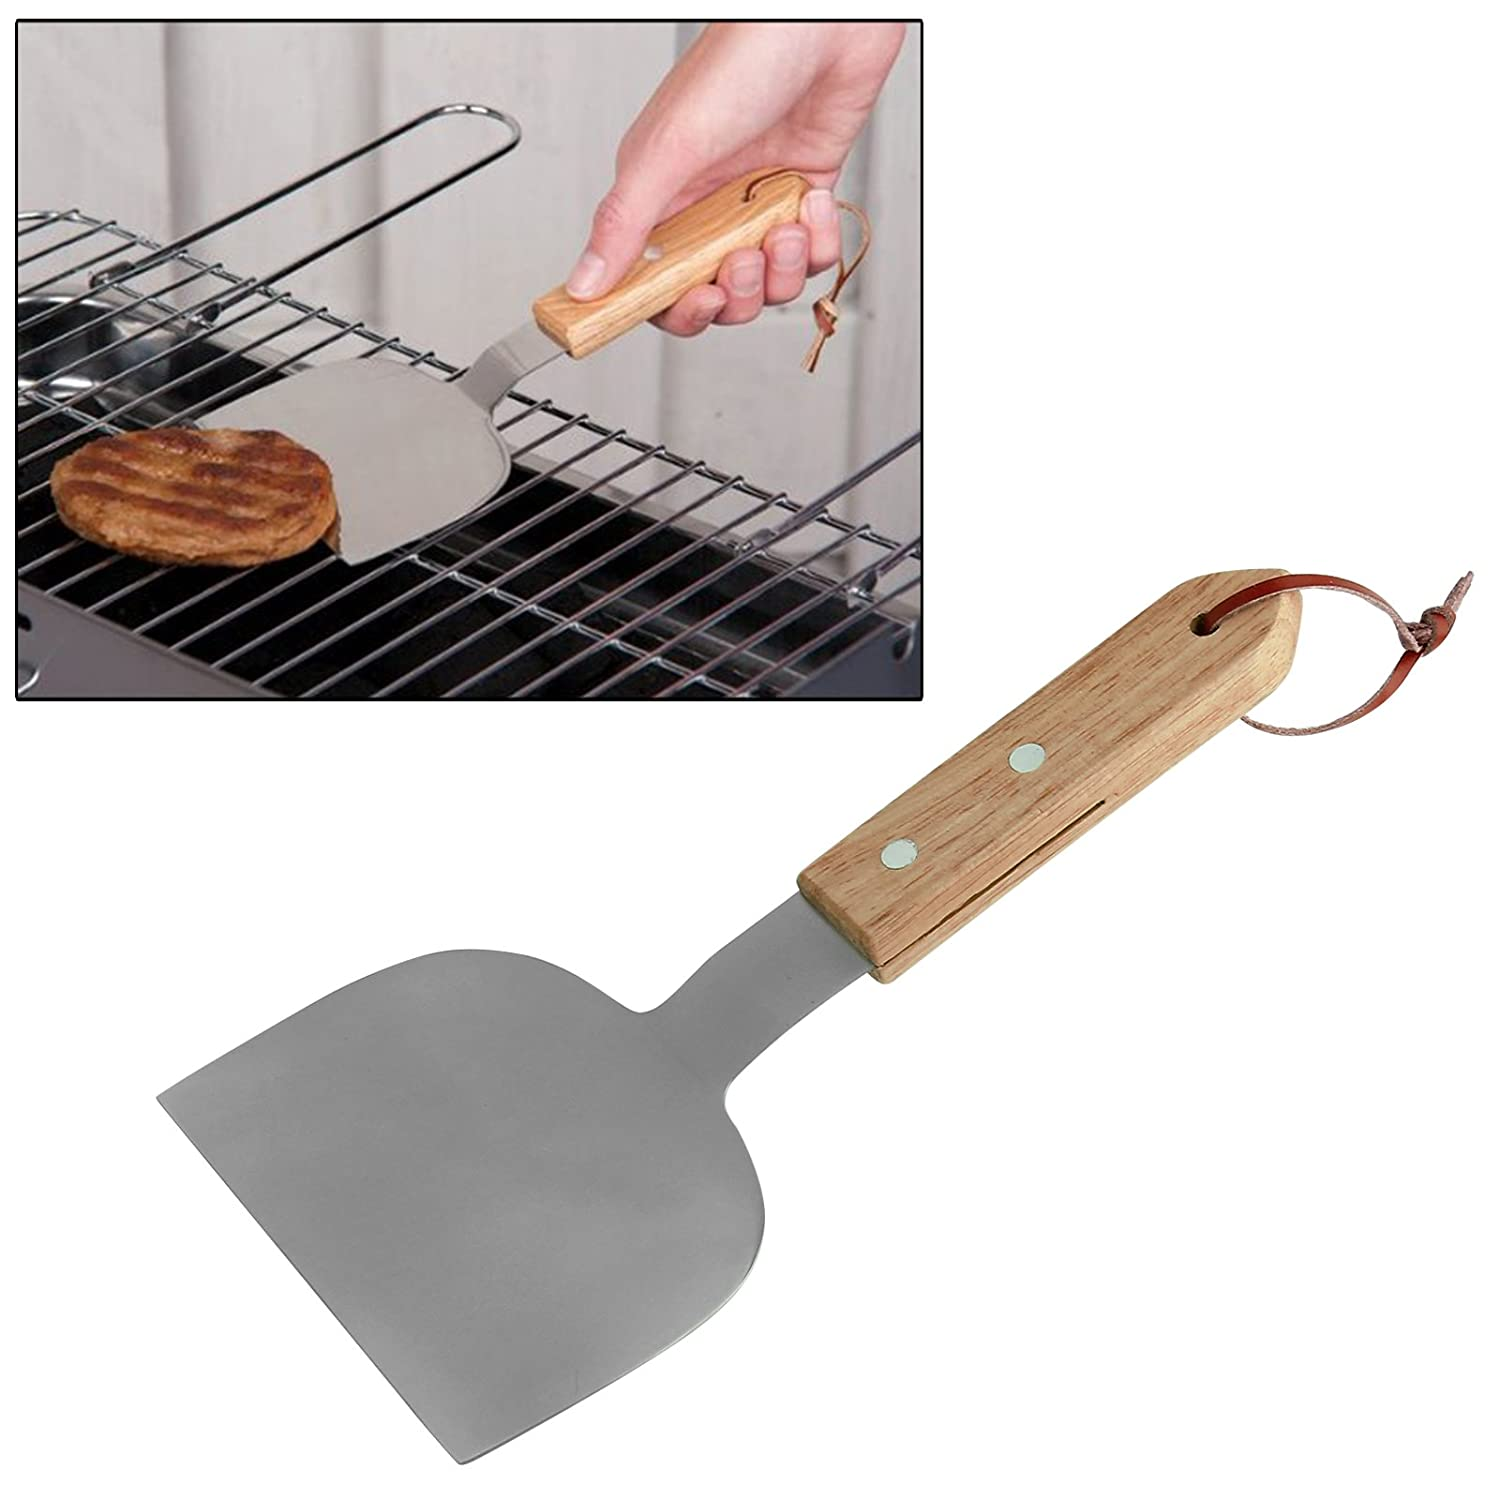 CostMad BBQ Barbecue Barbeque Grill Hamburger Turner Food Flipper Stainless Steel Burger Spatula Kitchen Cooking Serving Utensil Tool